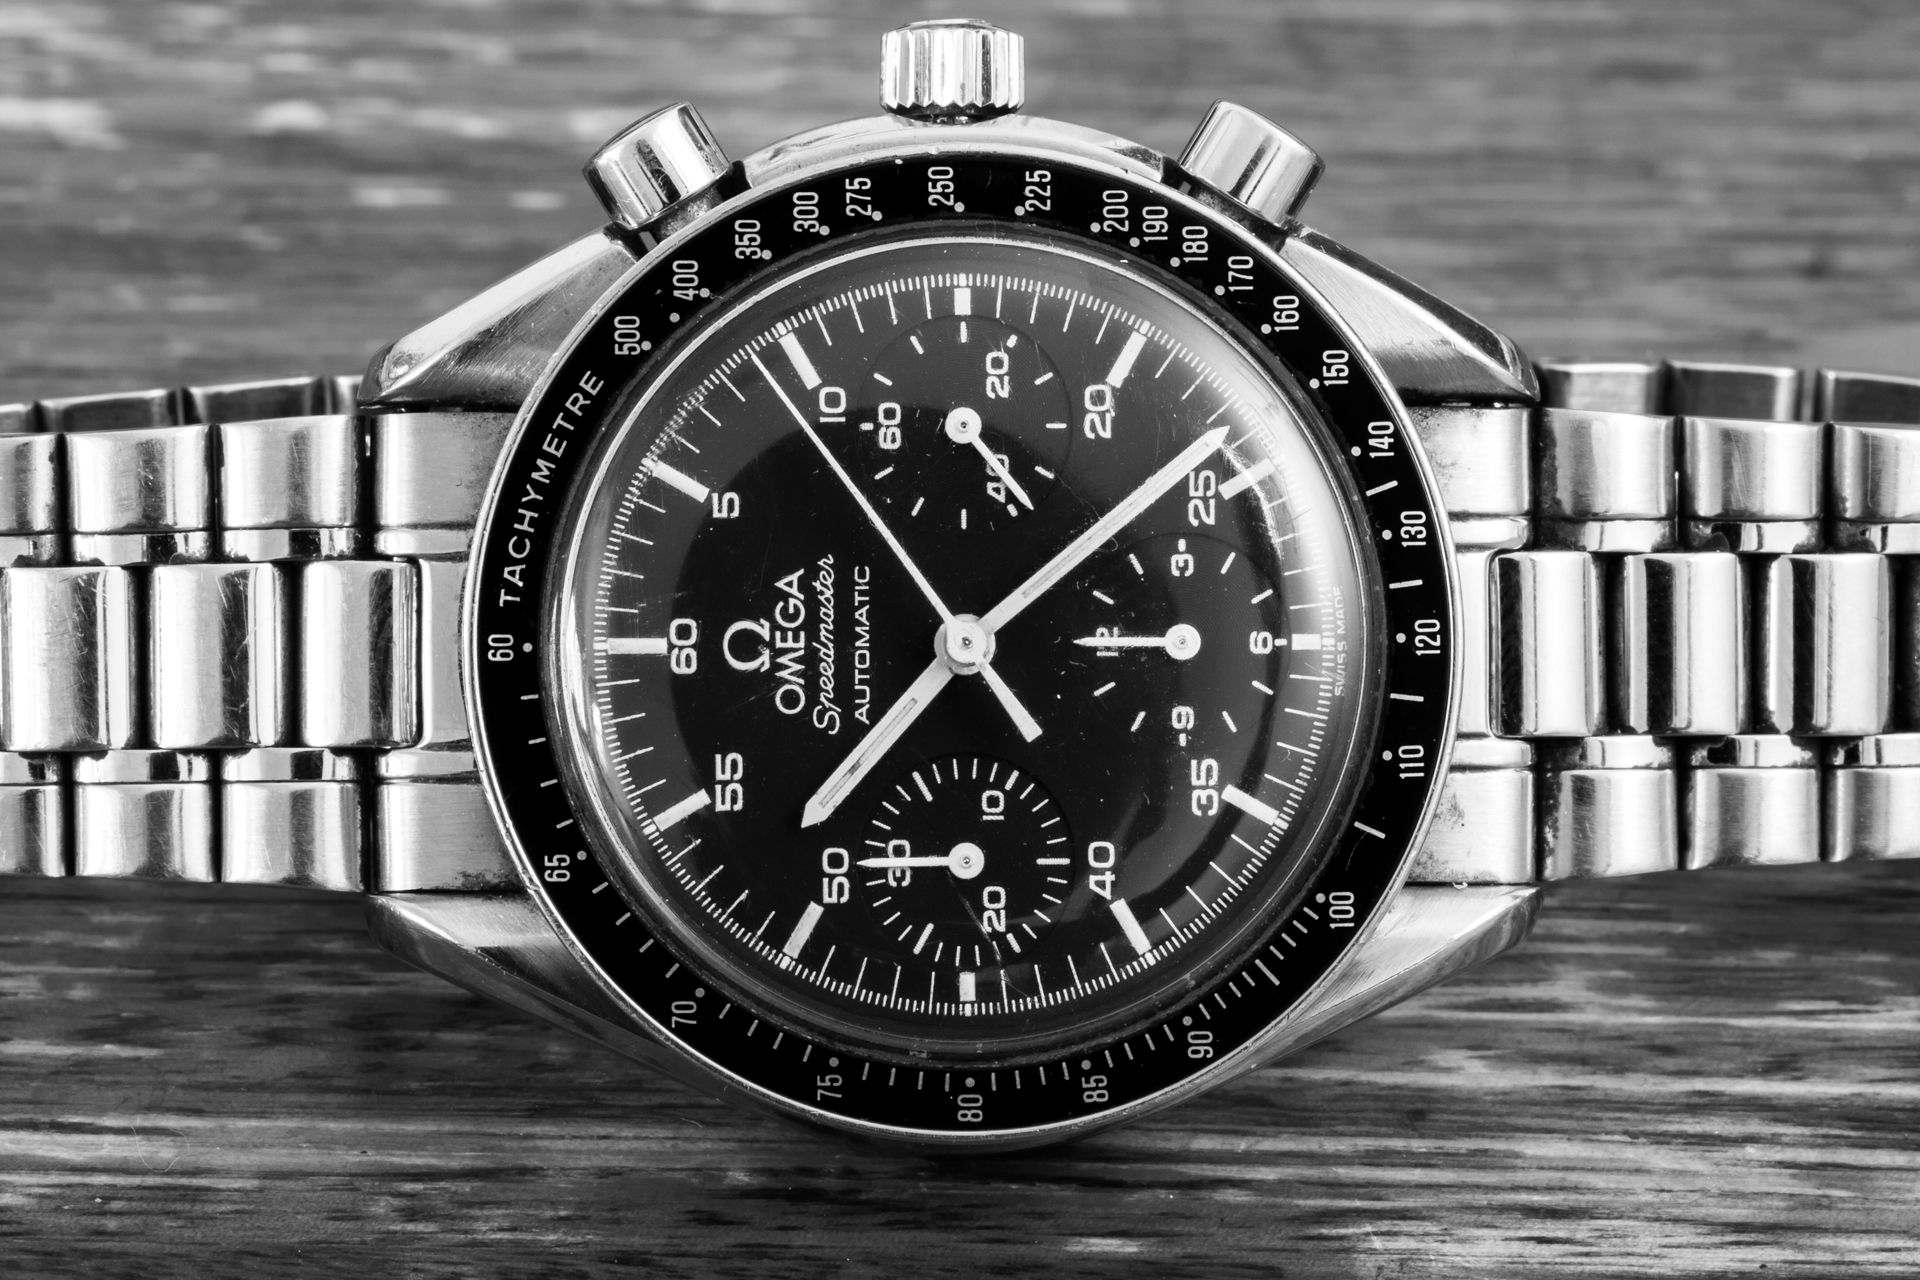 Omega Speedmaster Automatic – Tom's Follower Review